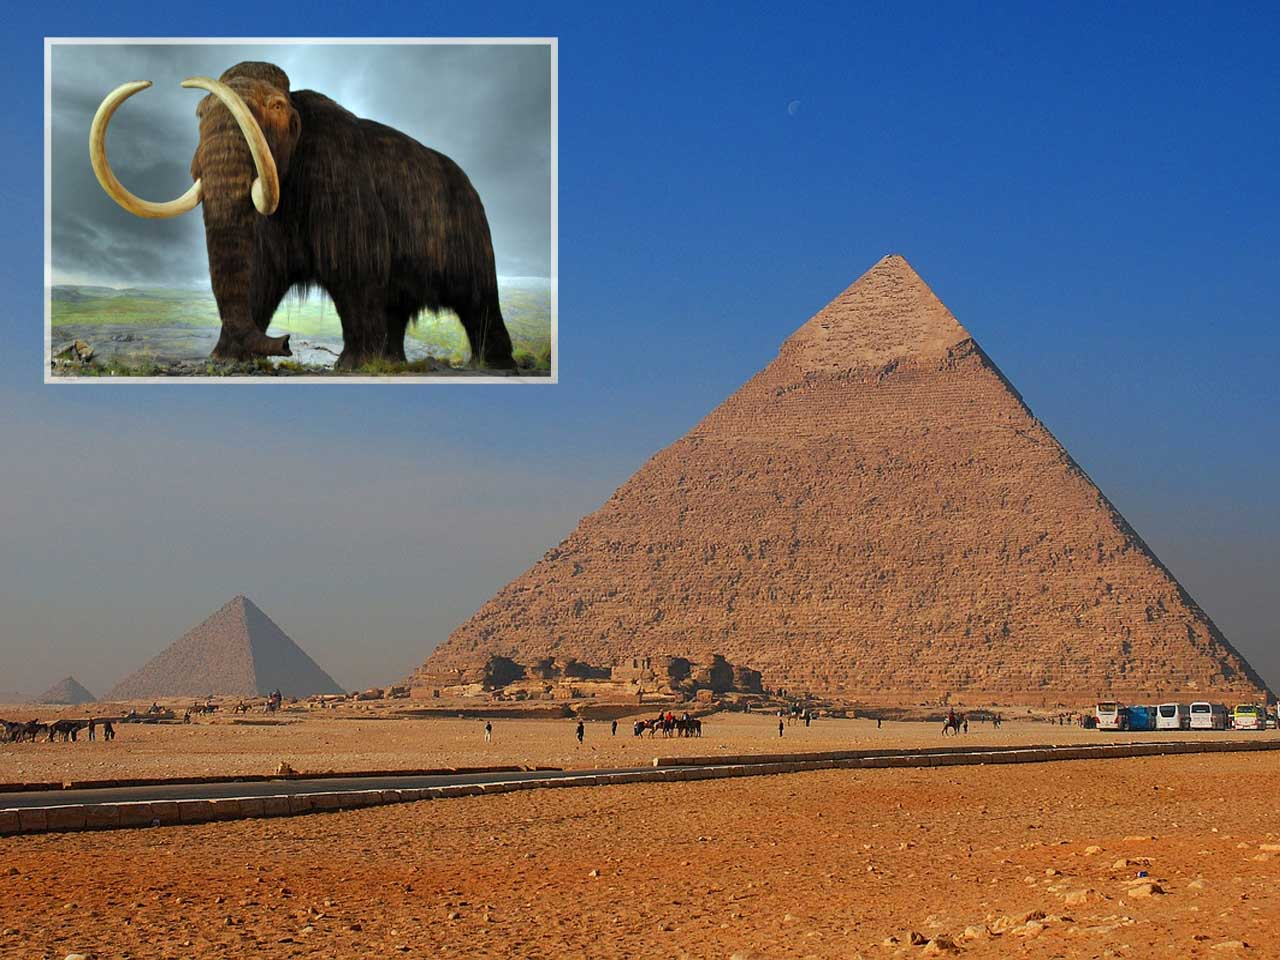 Woolly Mammoths were still alive while Egyptians were constructing the pyramids (2660 BCE).